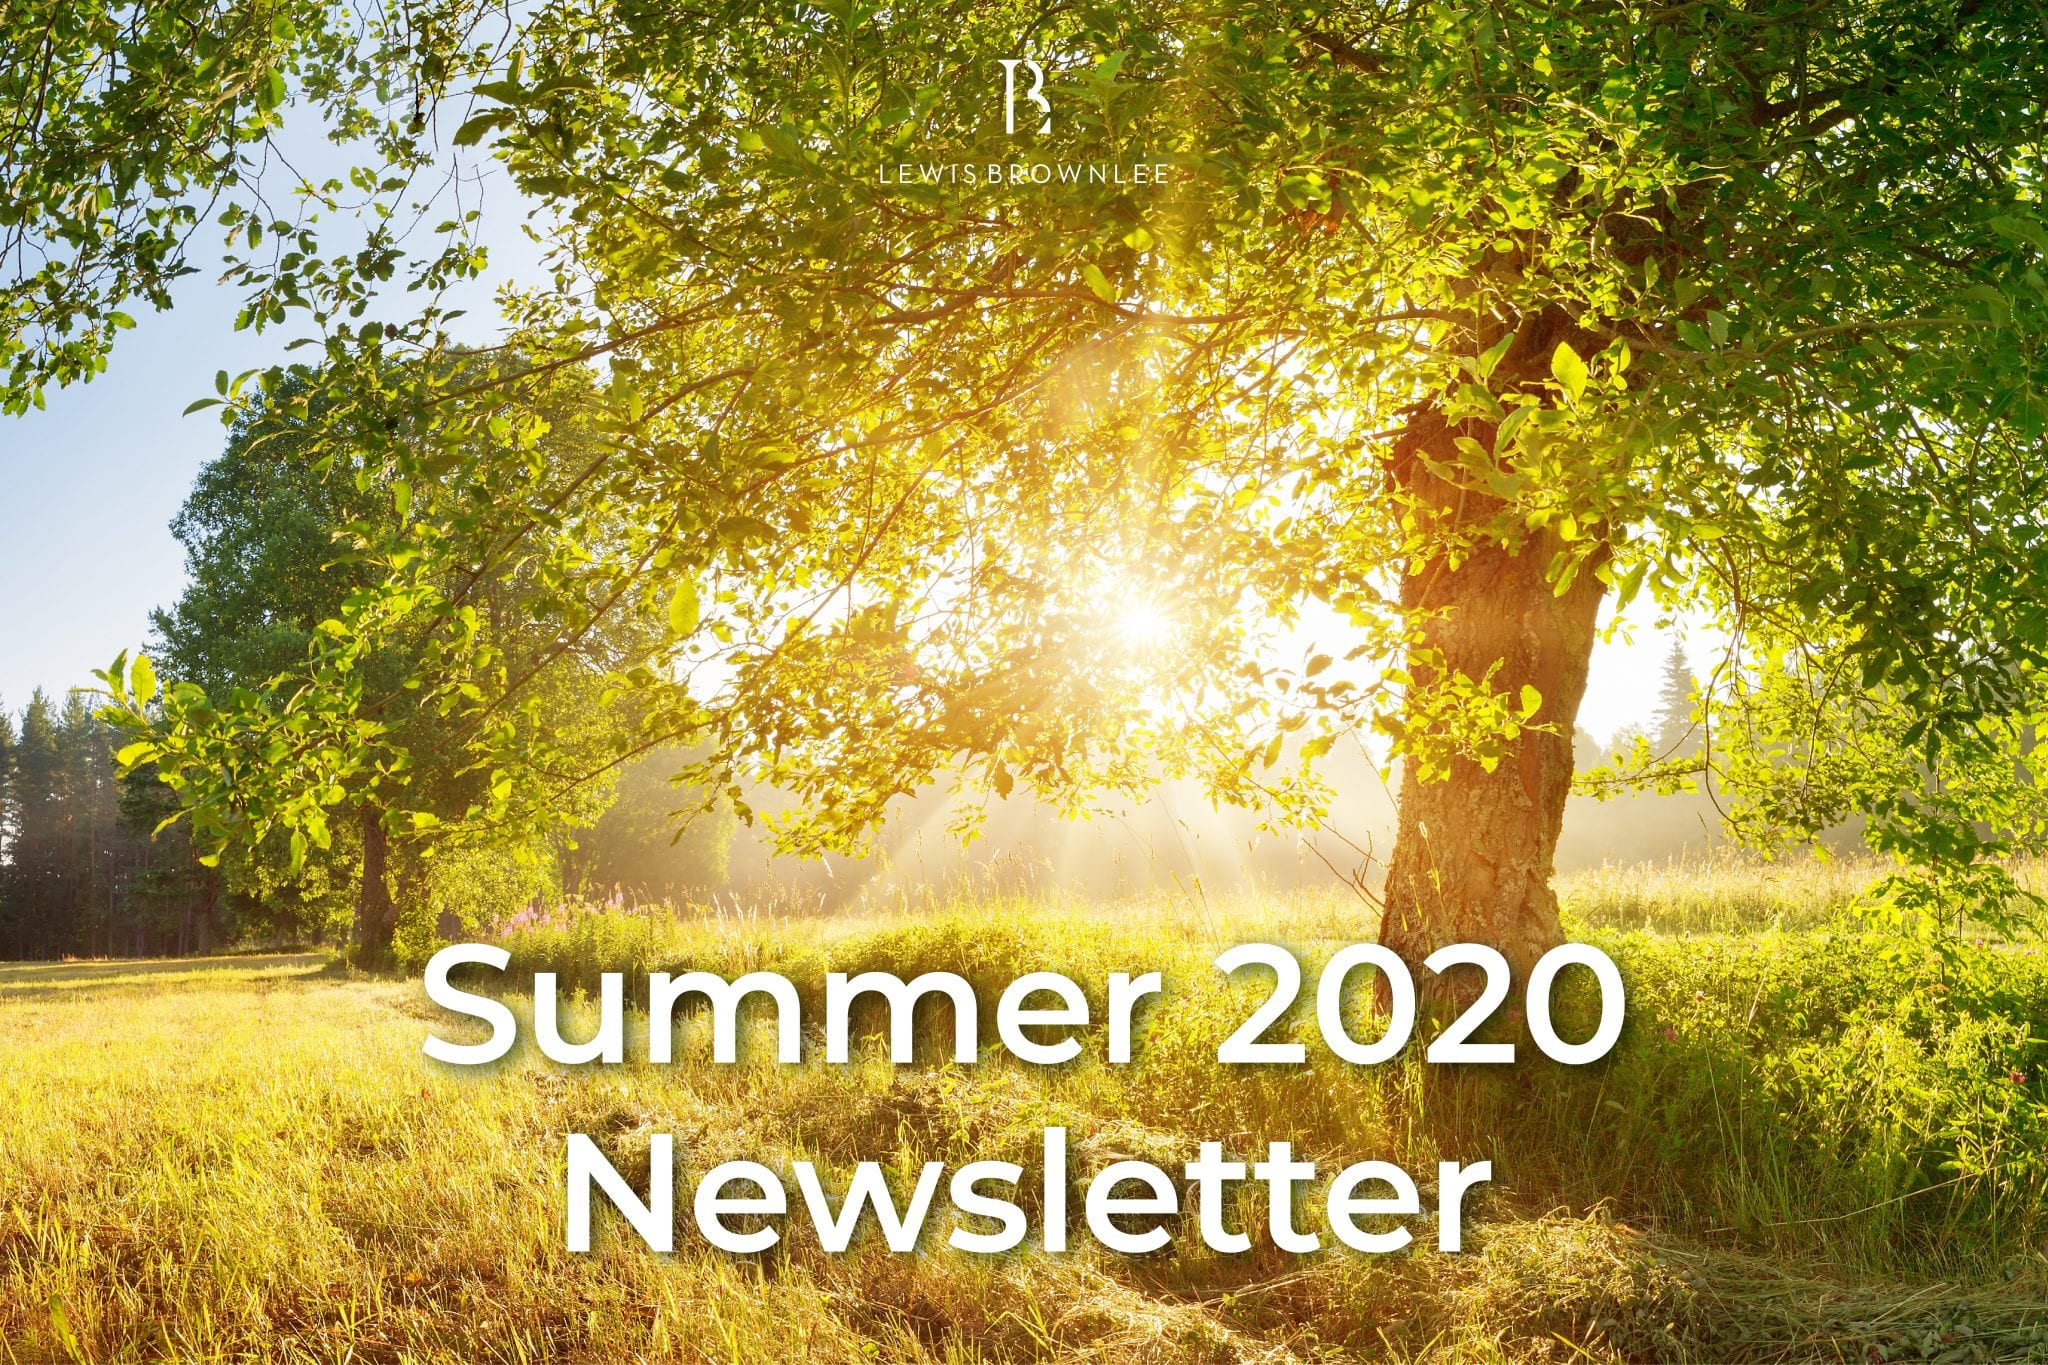 Lewis Brownlee Summer 2020 Newsletter